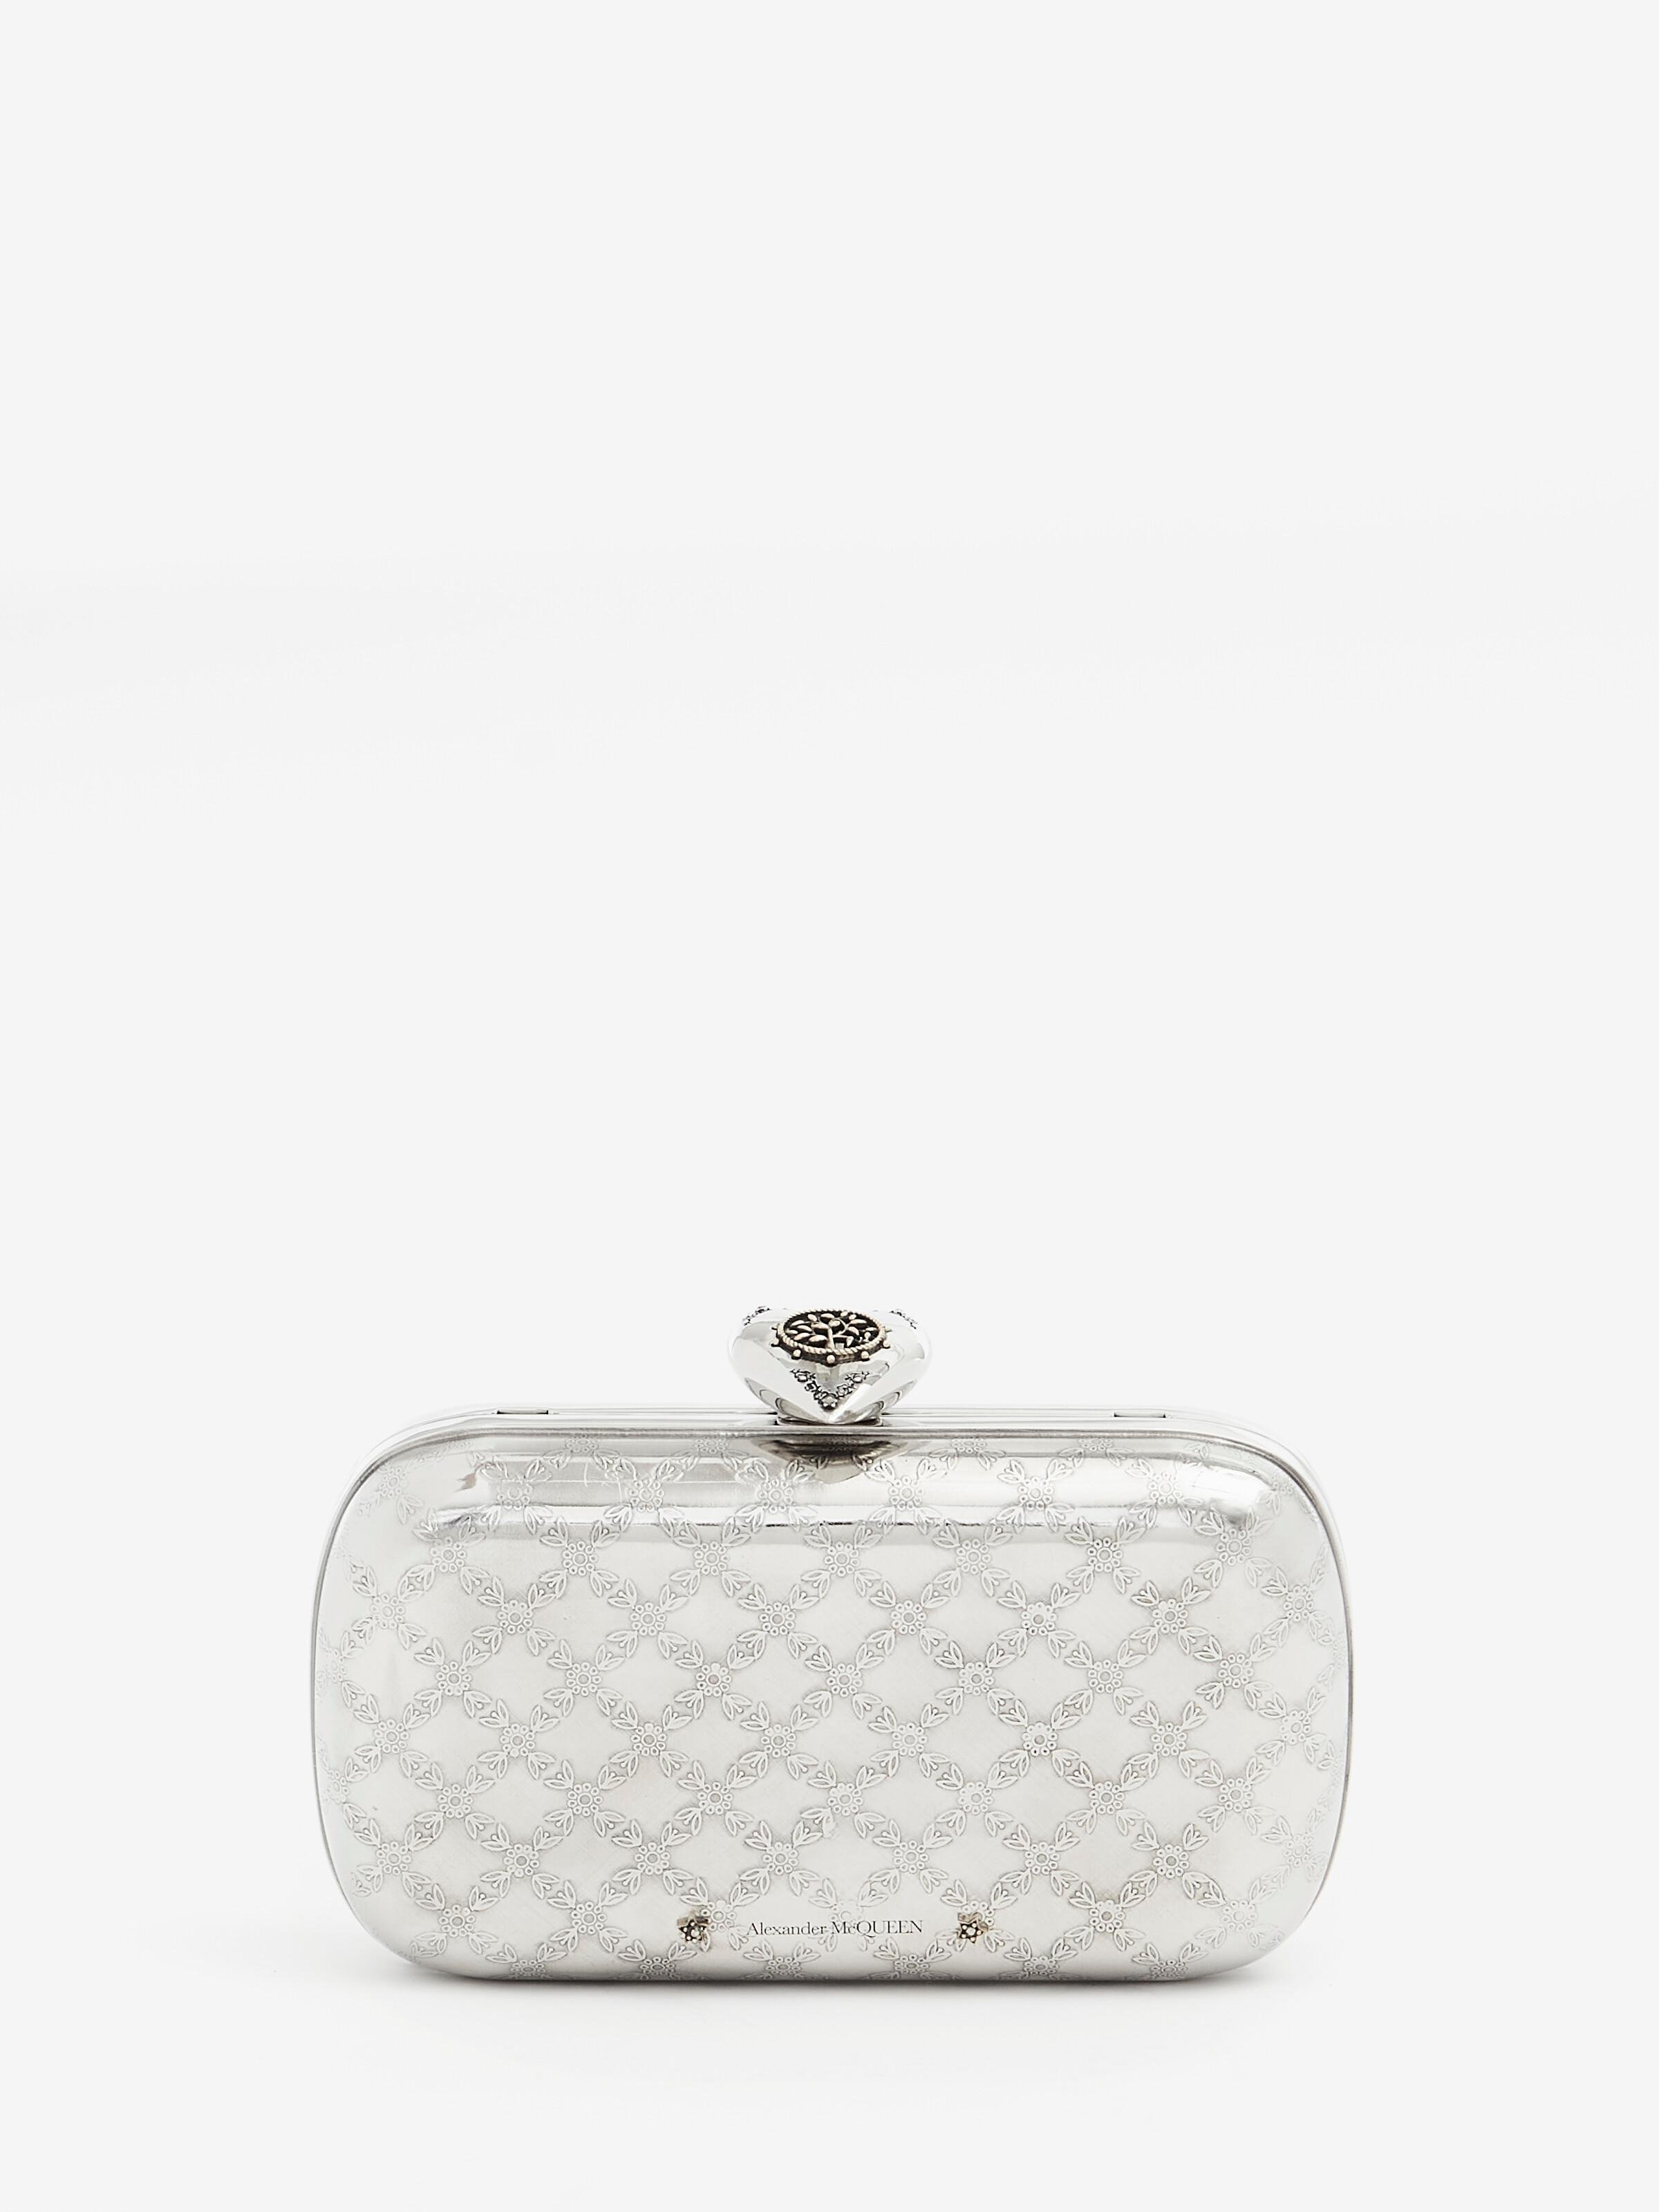 Engraved Heart Clutch